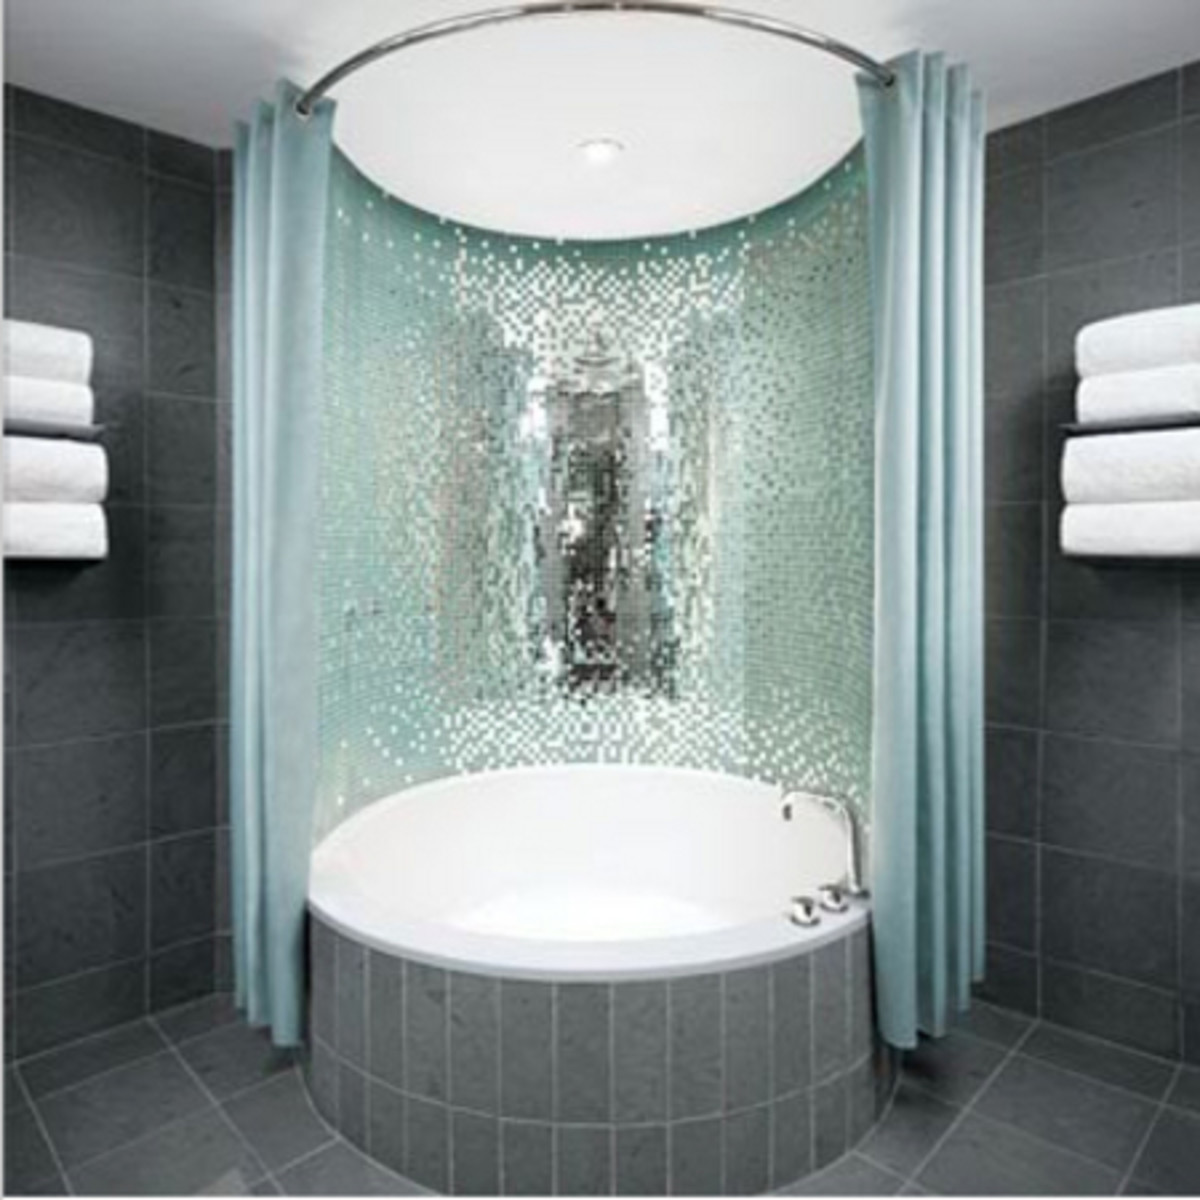 This is one example of a modern Roman style soaking tub.